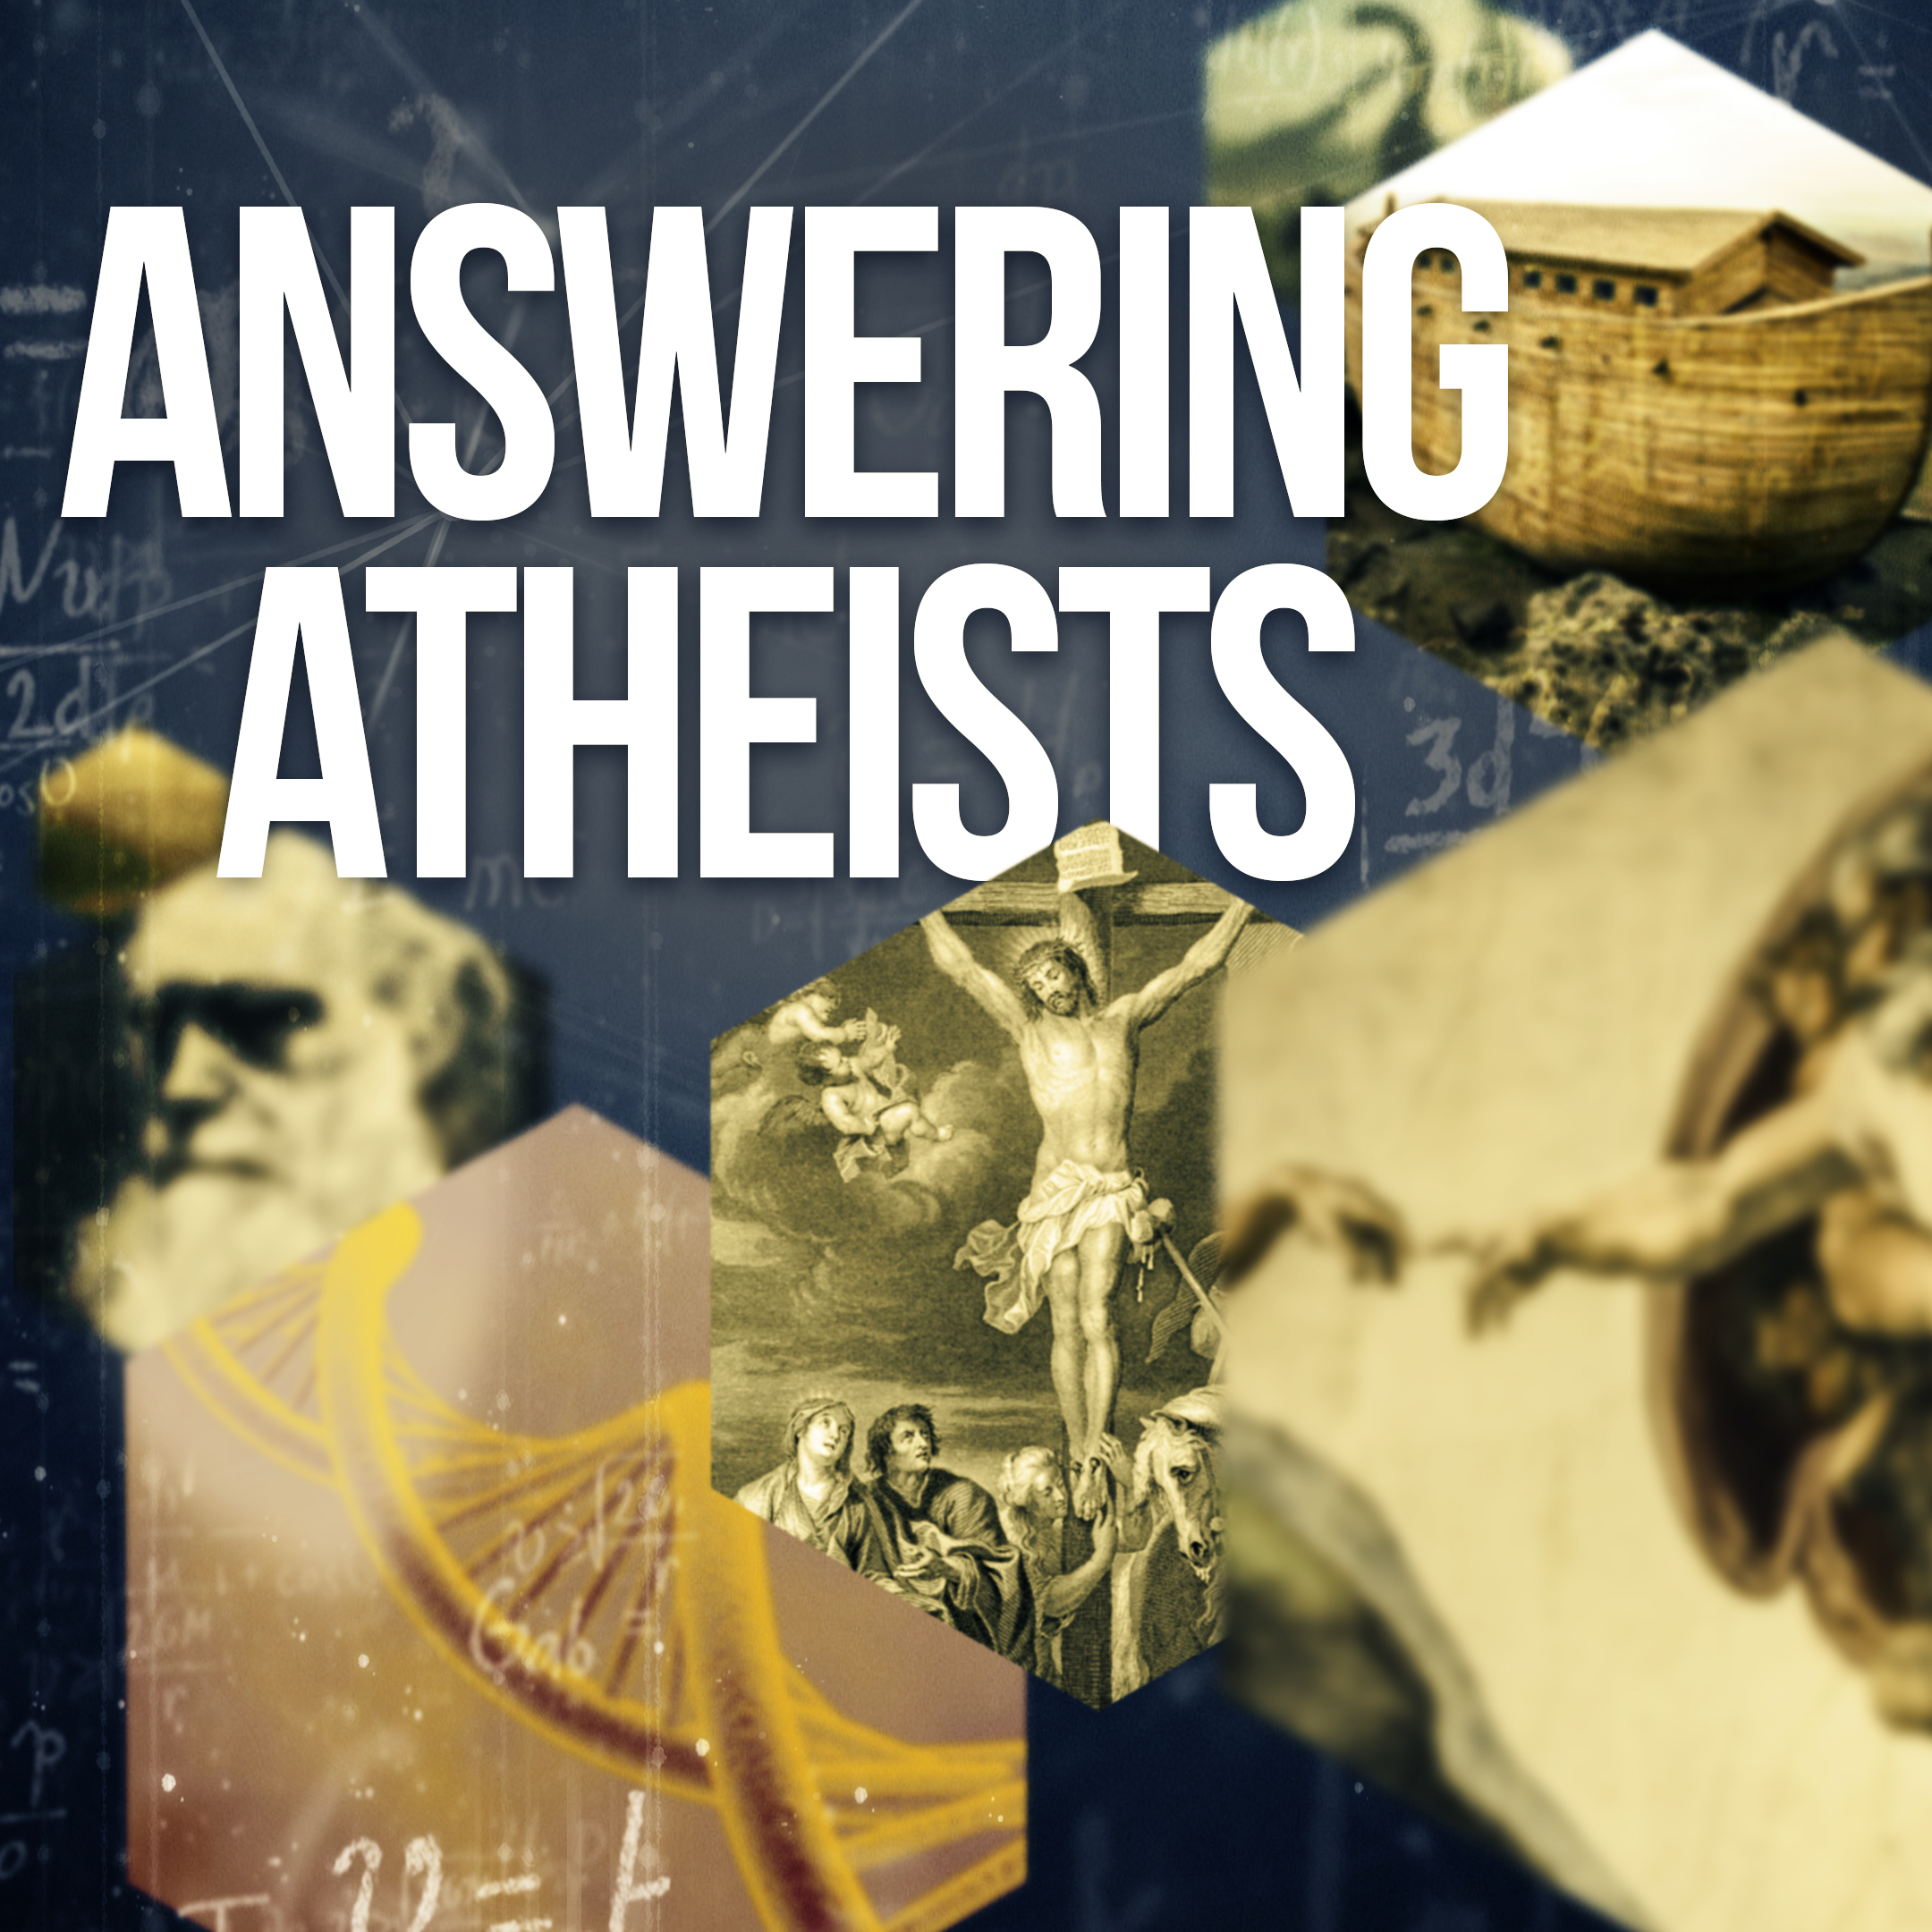 Answering-Athiests-Social-2000x2000.jpg